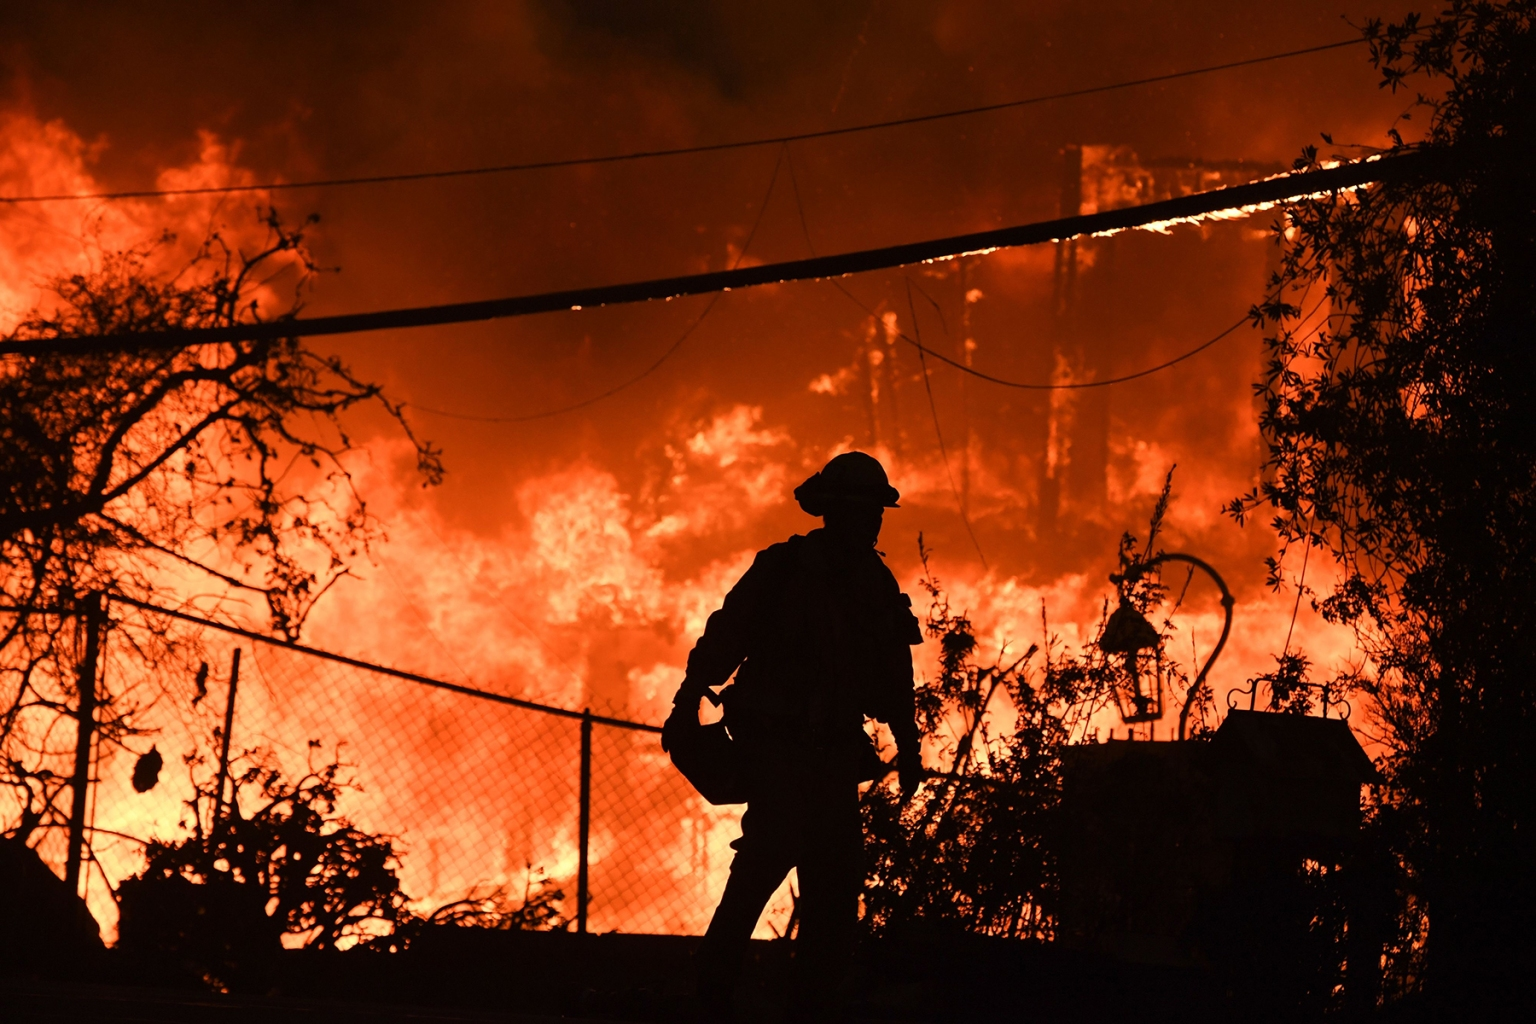 A firefighter is silhouetted by a burning home along Pacific Coast Highway during the Woolsey Fire in Malibu, California, on Nov. 9. ROBYN BECK/AFP/Getty Images